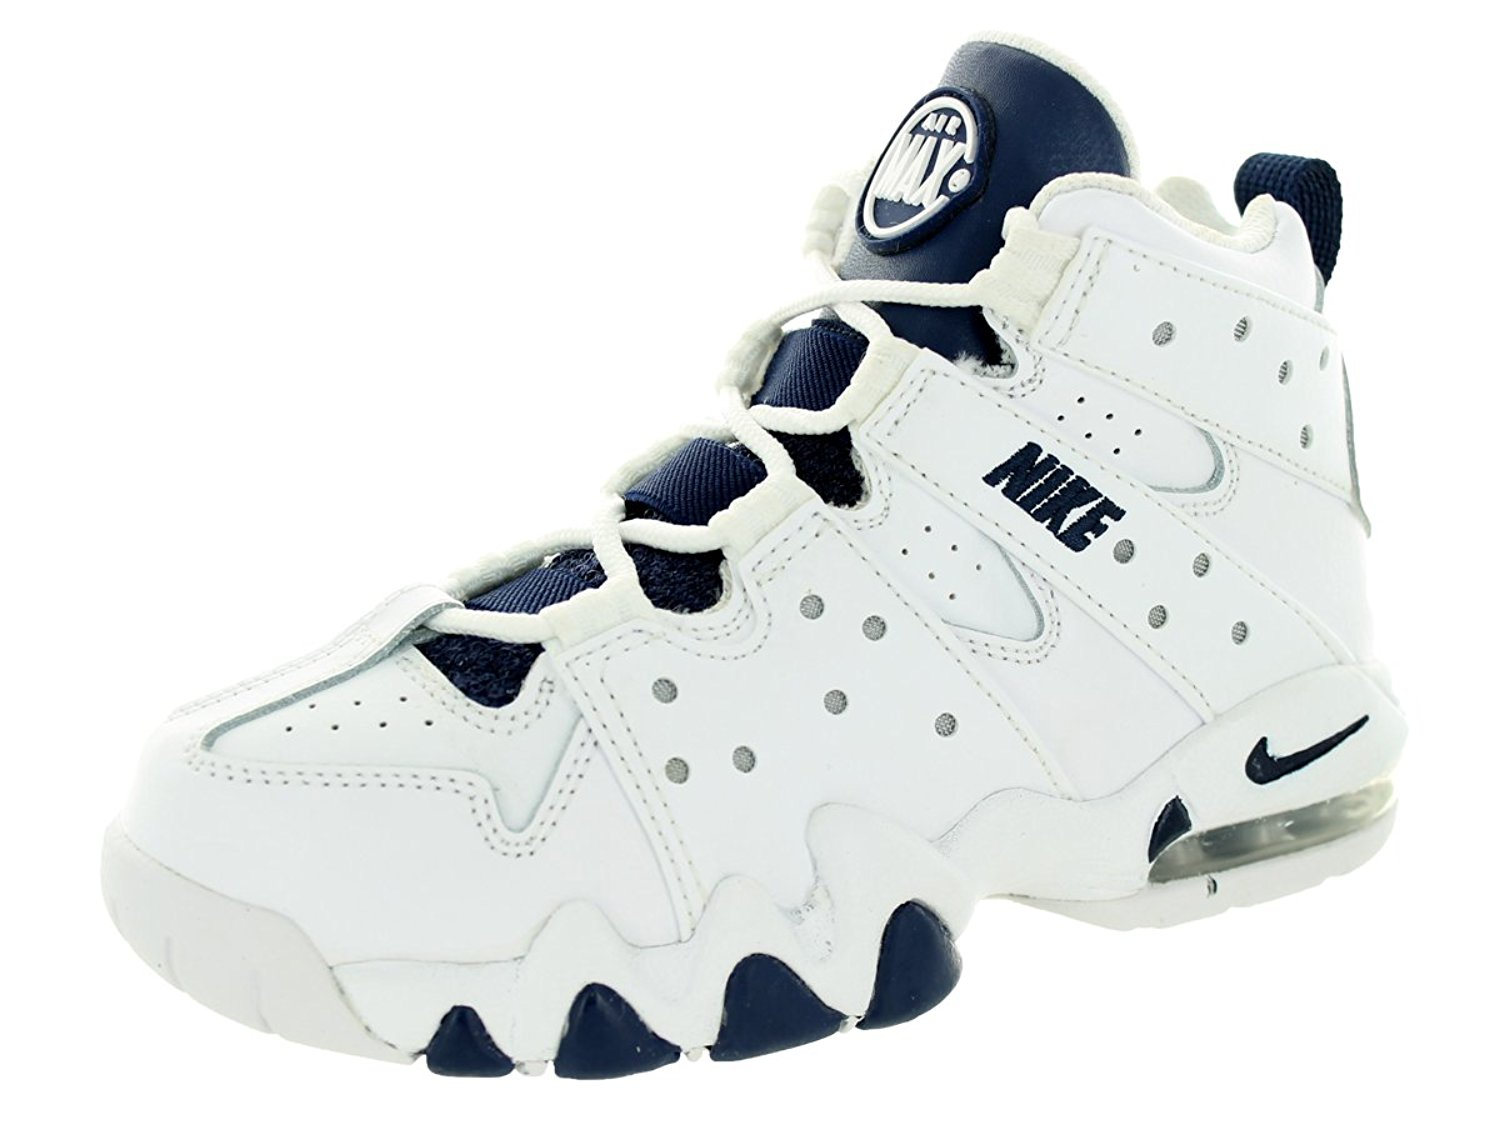 30f6acb1dd Cheap Air Max Cb 94, find Air Max Cb 94 deals on line at Alibaba.com